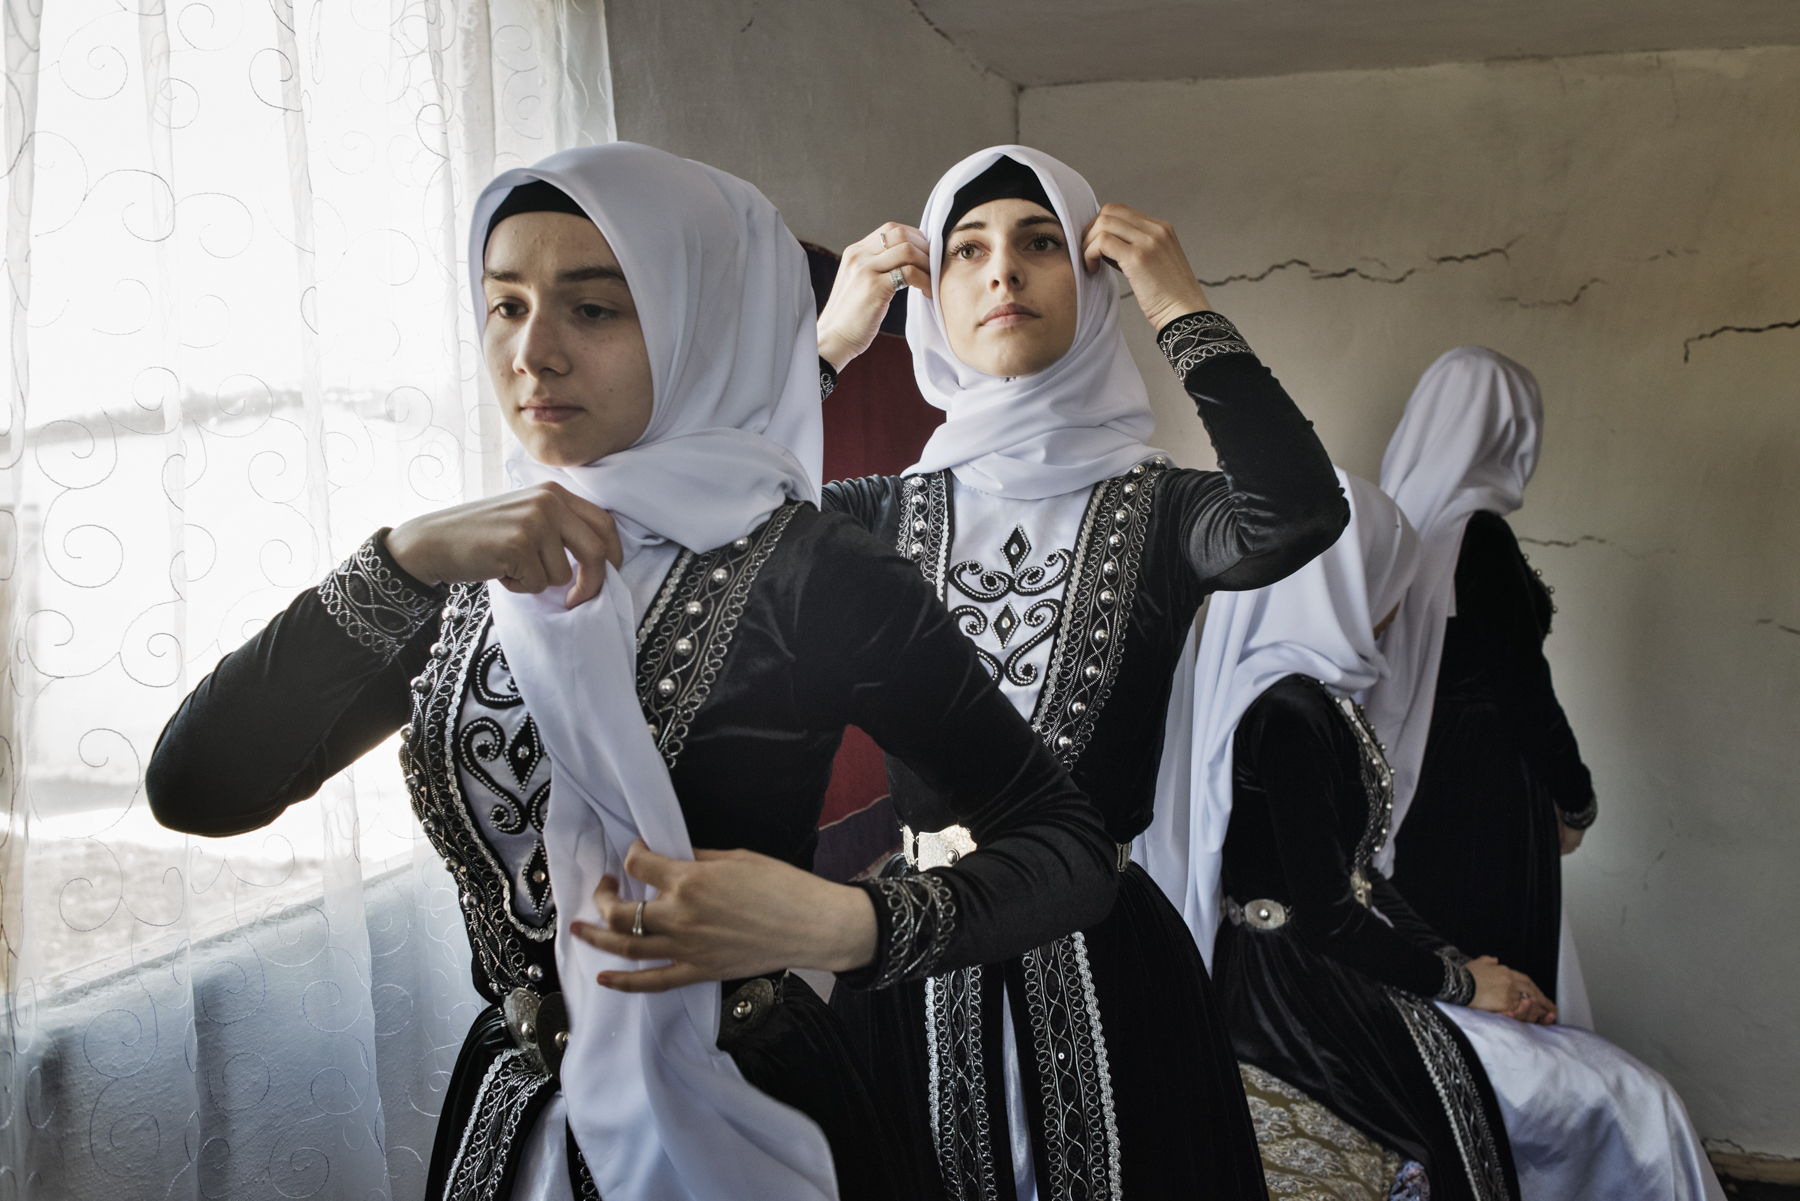 Russia, Chechnya, Grozny, 18 April 2015